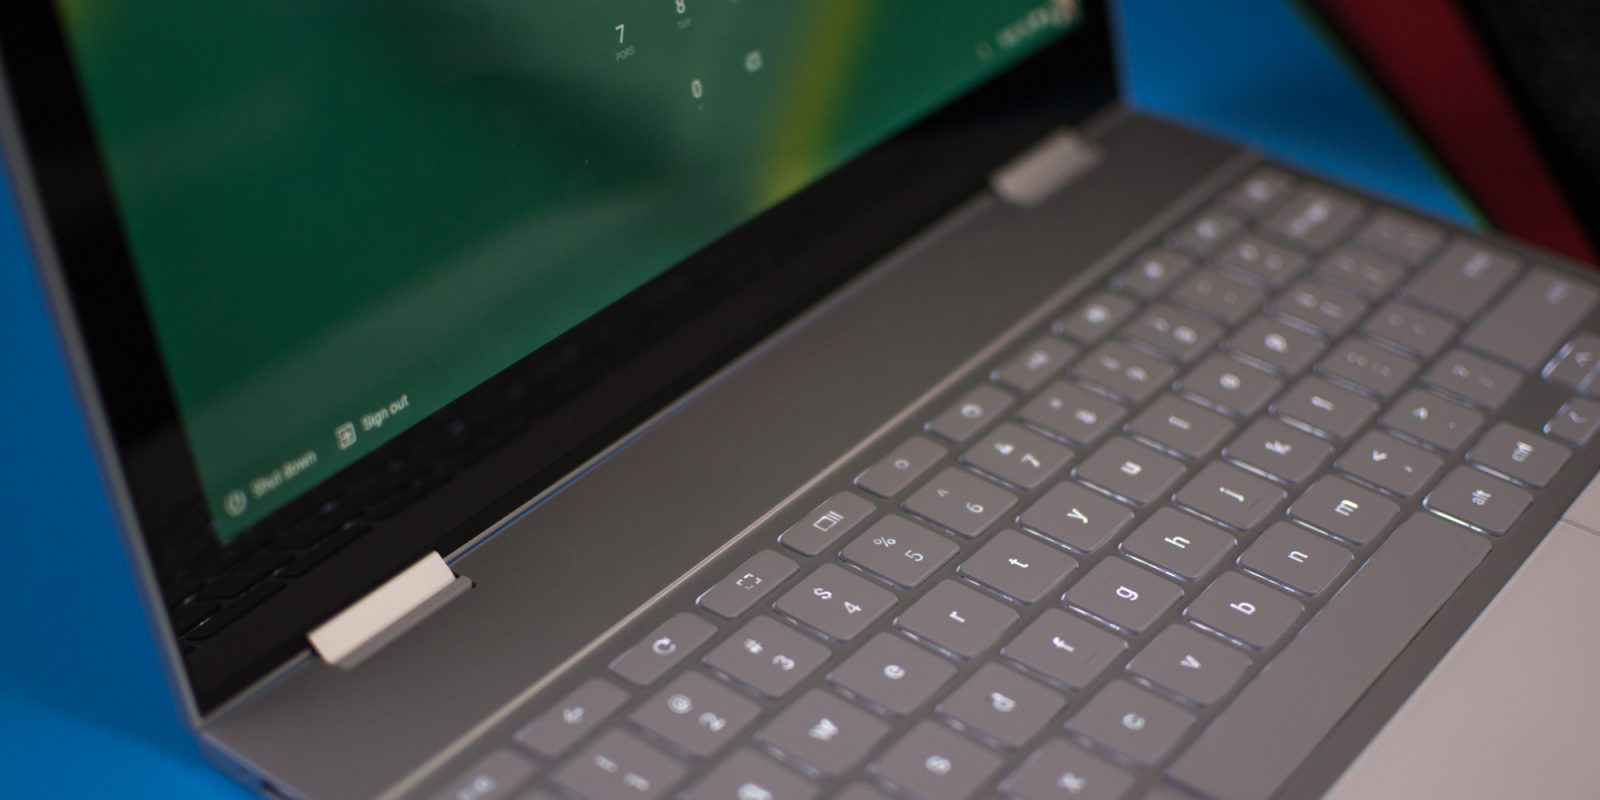 how to adjust the keyboard backlighting on chromebooks 9to5google